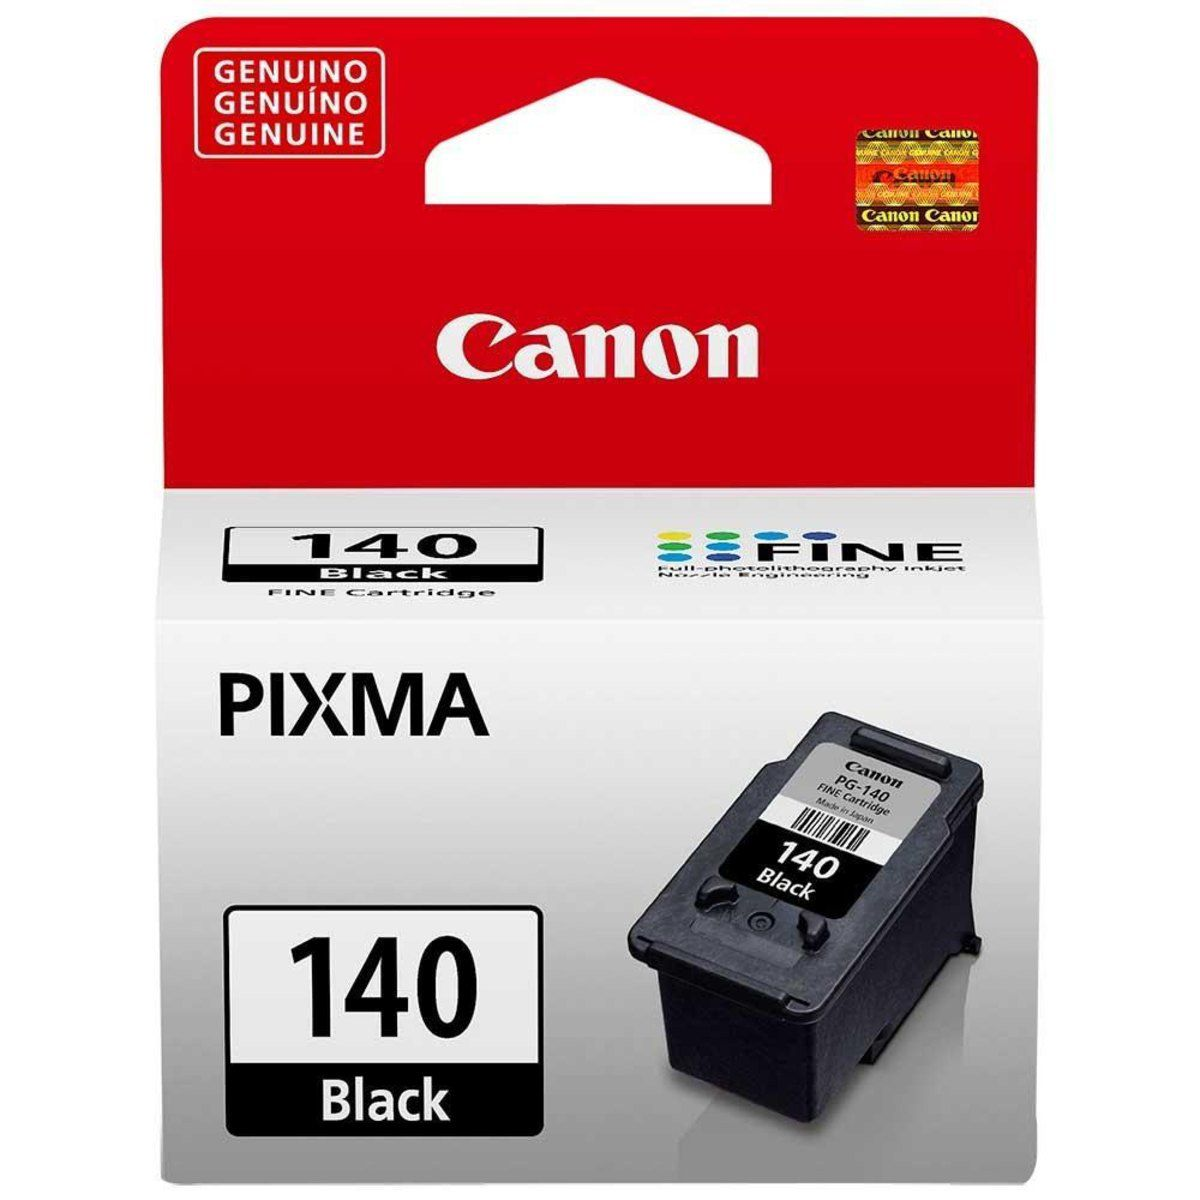 Cartucho Canon 140 Preto Original 8 ml